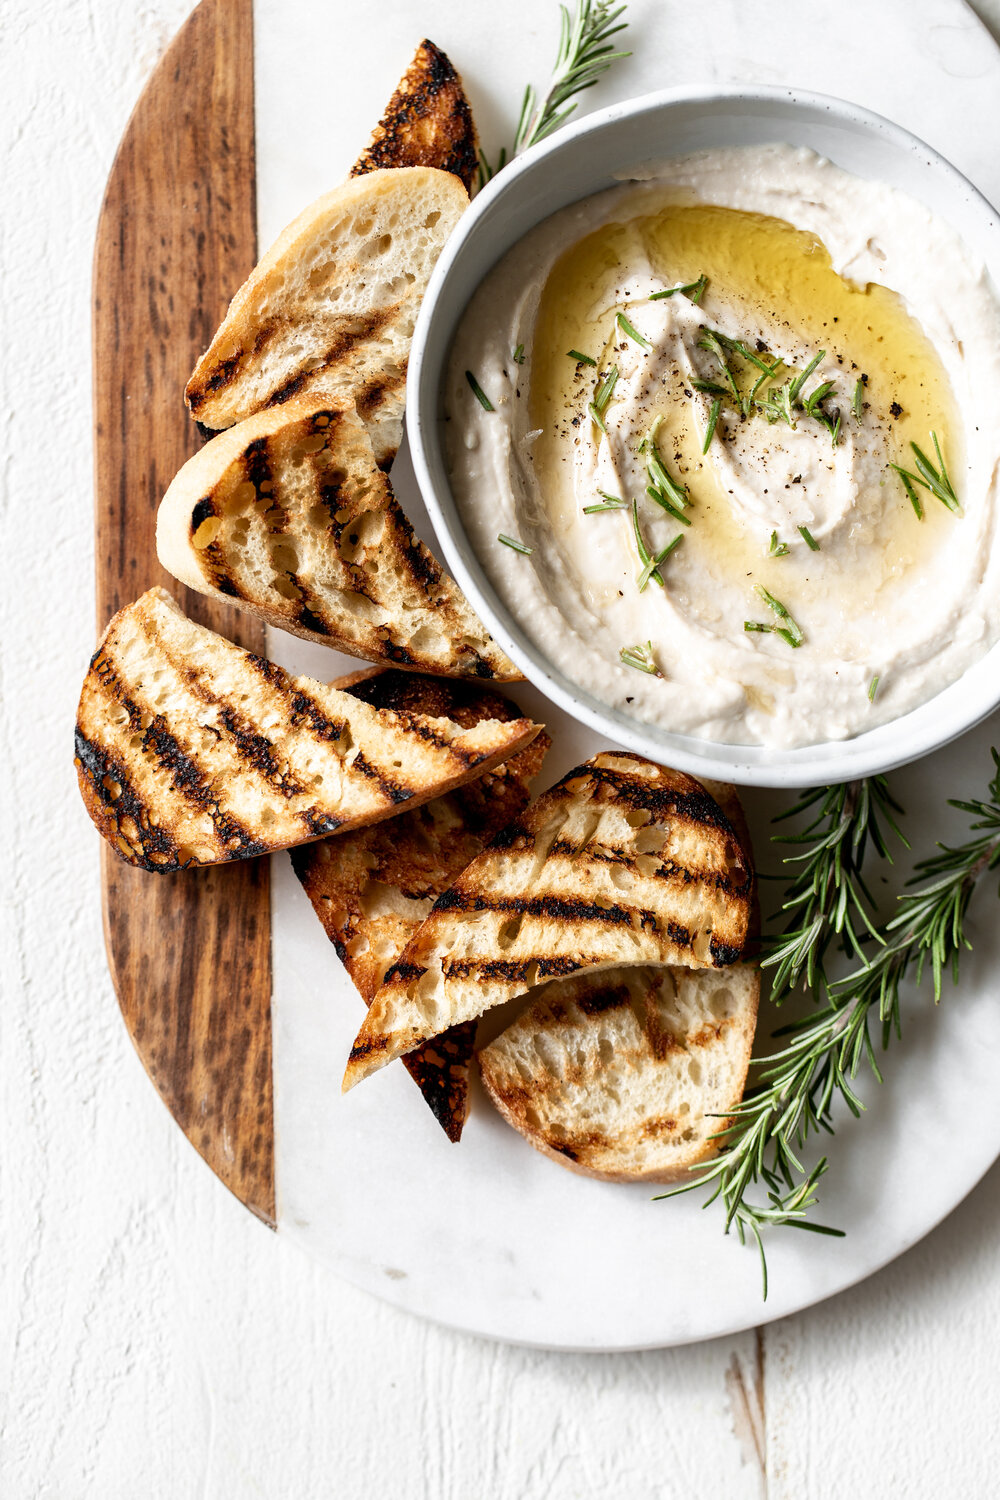 The cannellini white beans blended with oil infused with garlic and rosemary and cheese for an easy Italian bean dip fit for a cocktail party